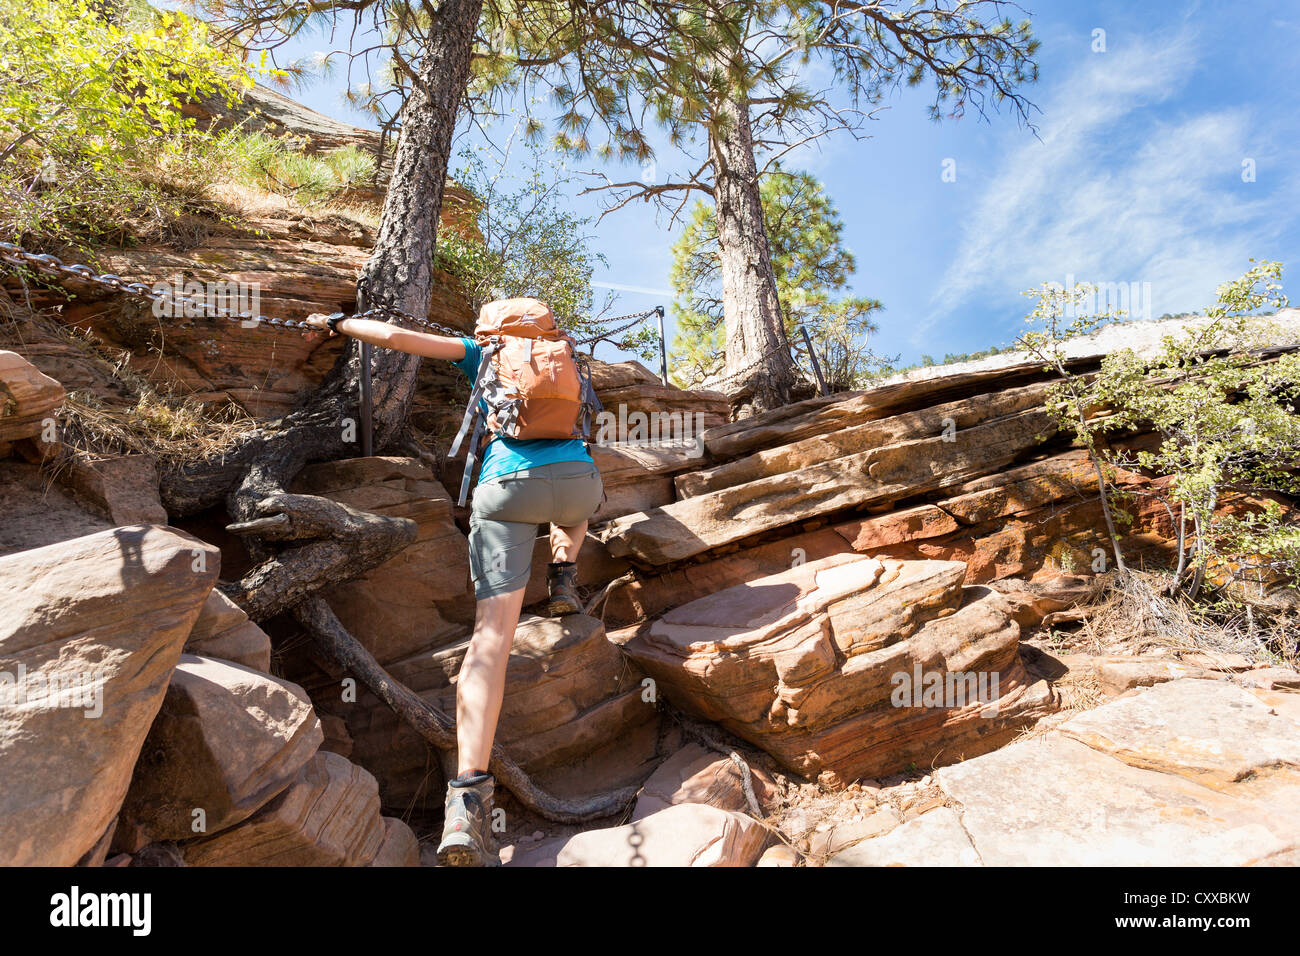 Young woman hiking a strenuous Angel's Landing trail at Zion National Park - beautiful scenic views - Stock Image